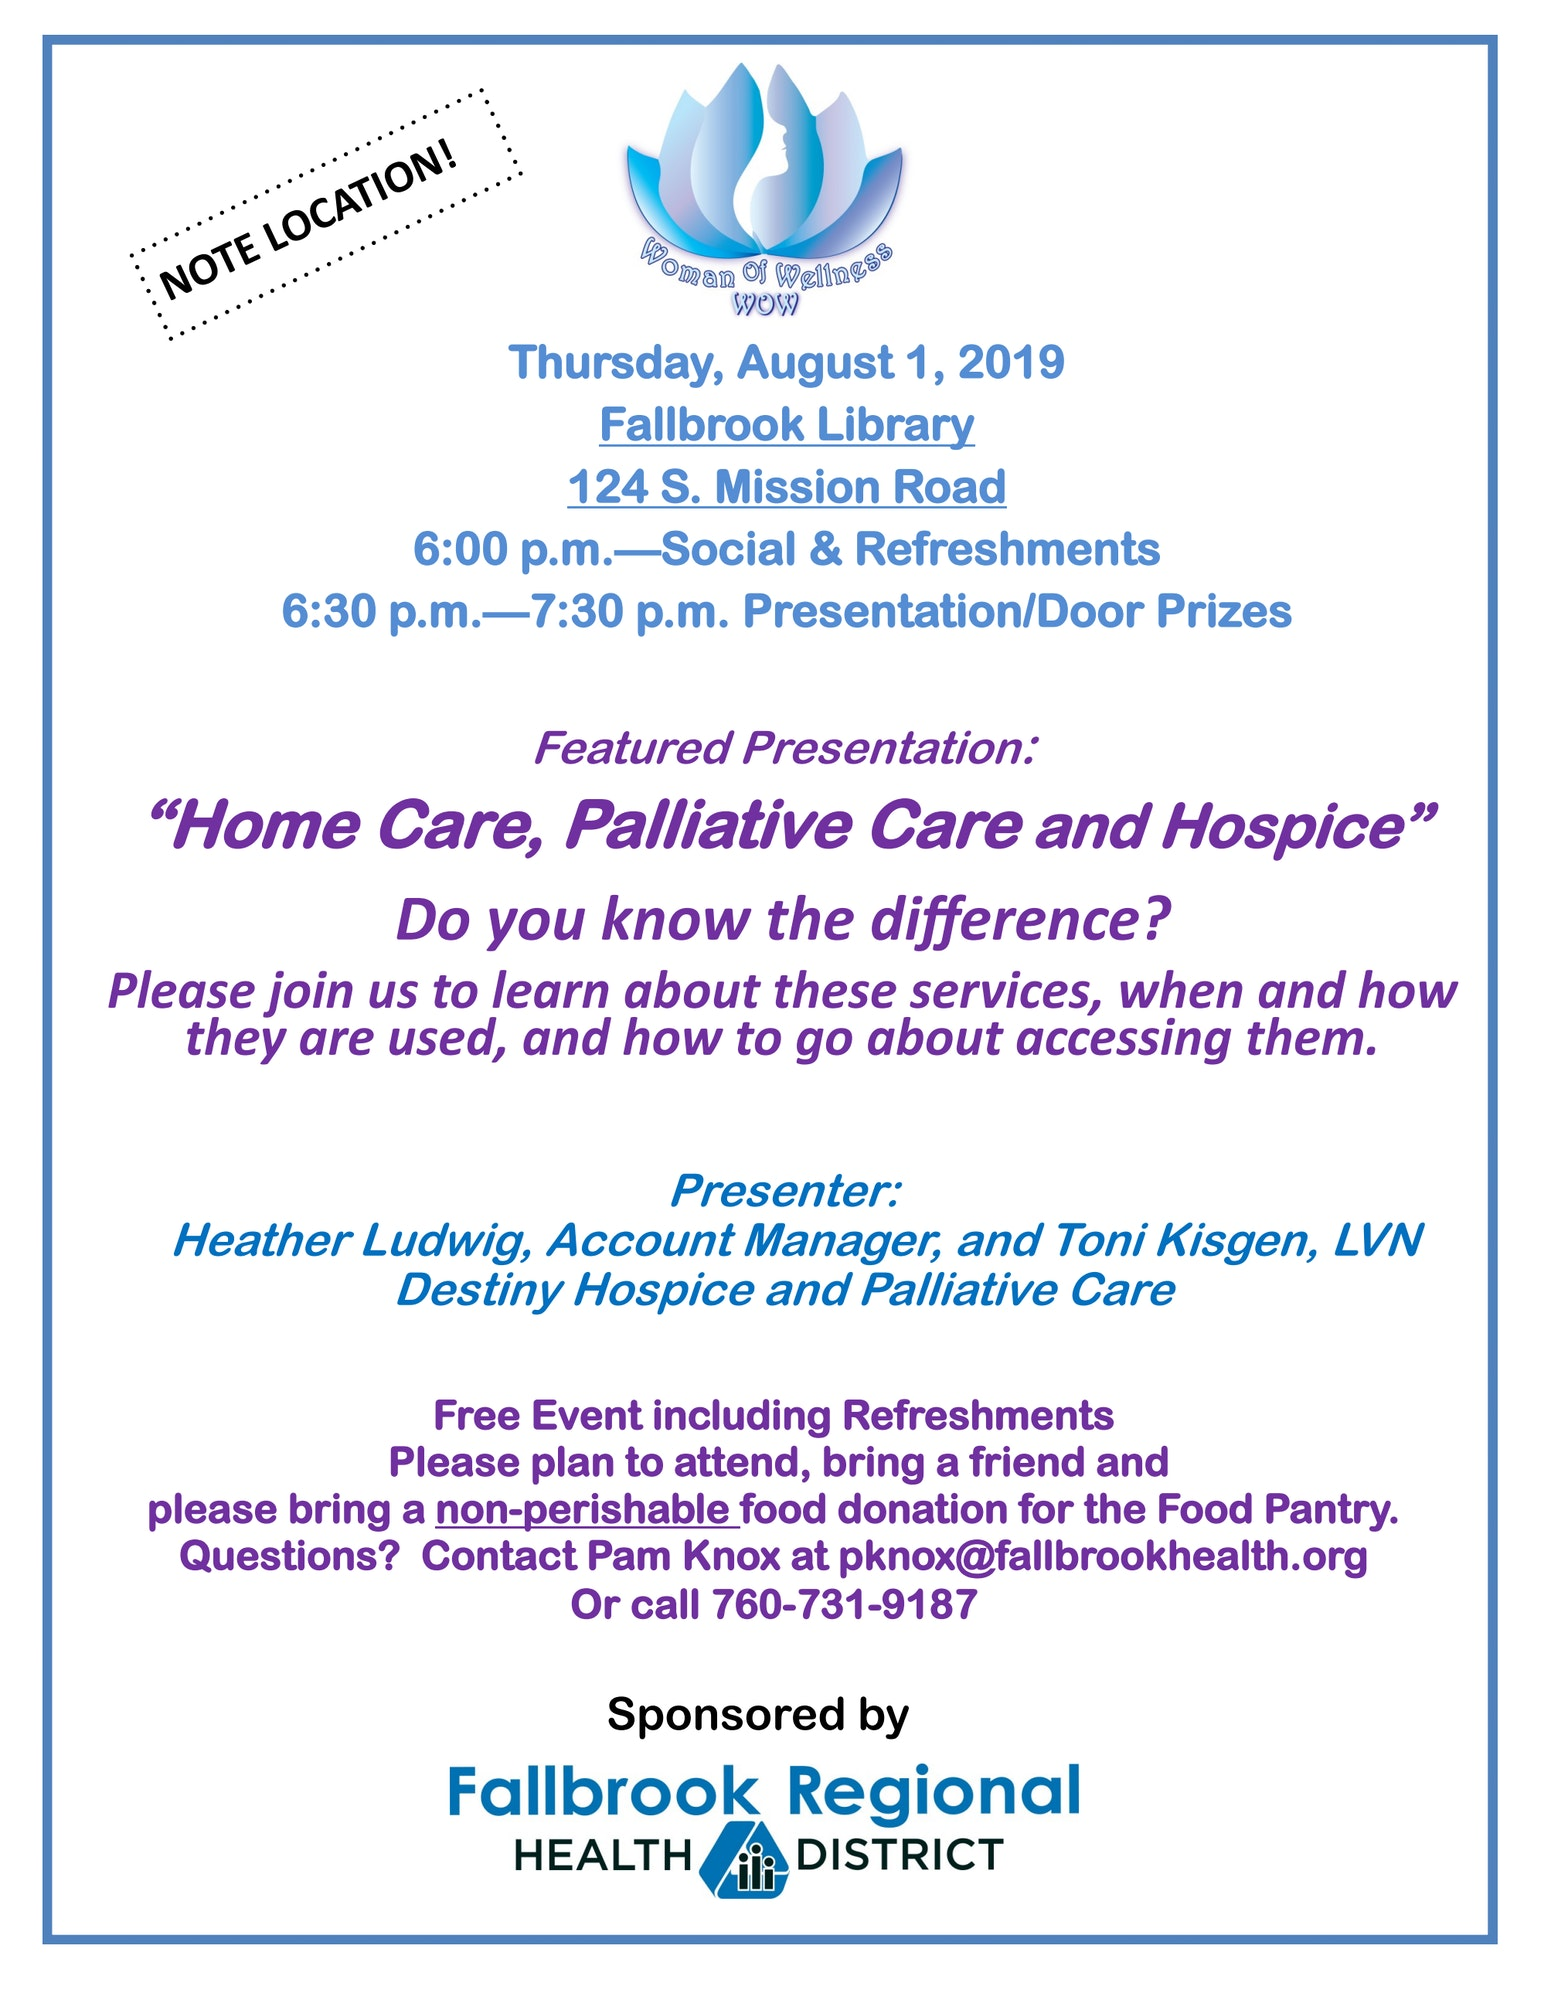 Home Care, Palliative Care and Hospice at the Fallbrook Library, 124 S. Mission Rd. at 6:00pm